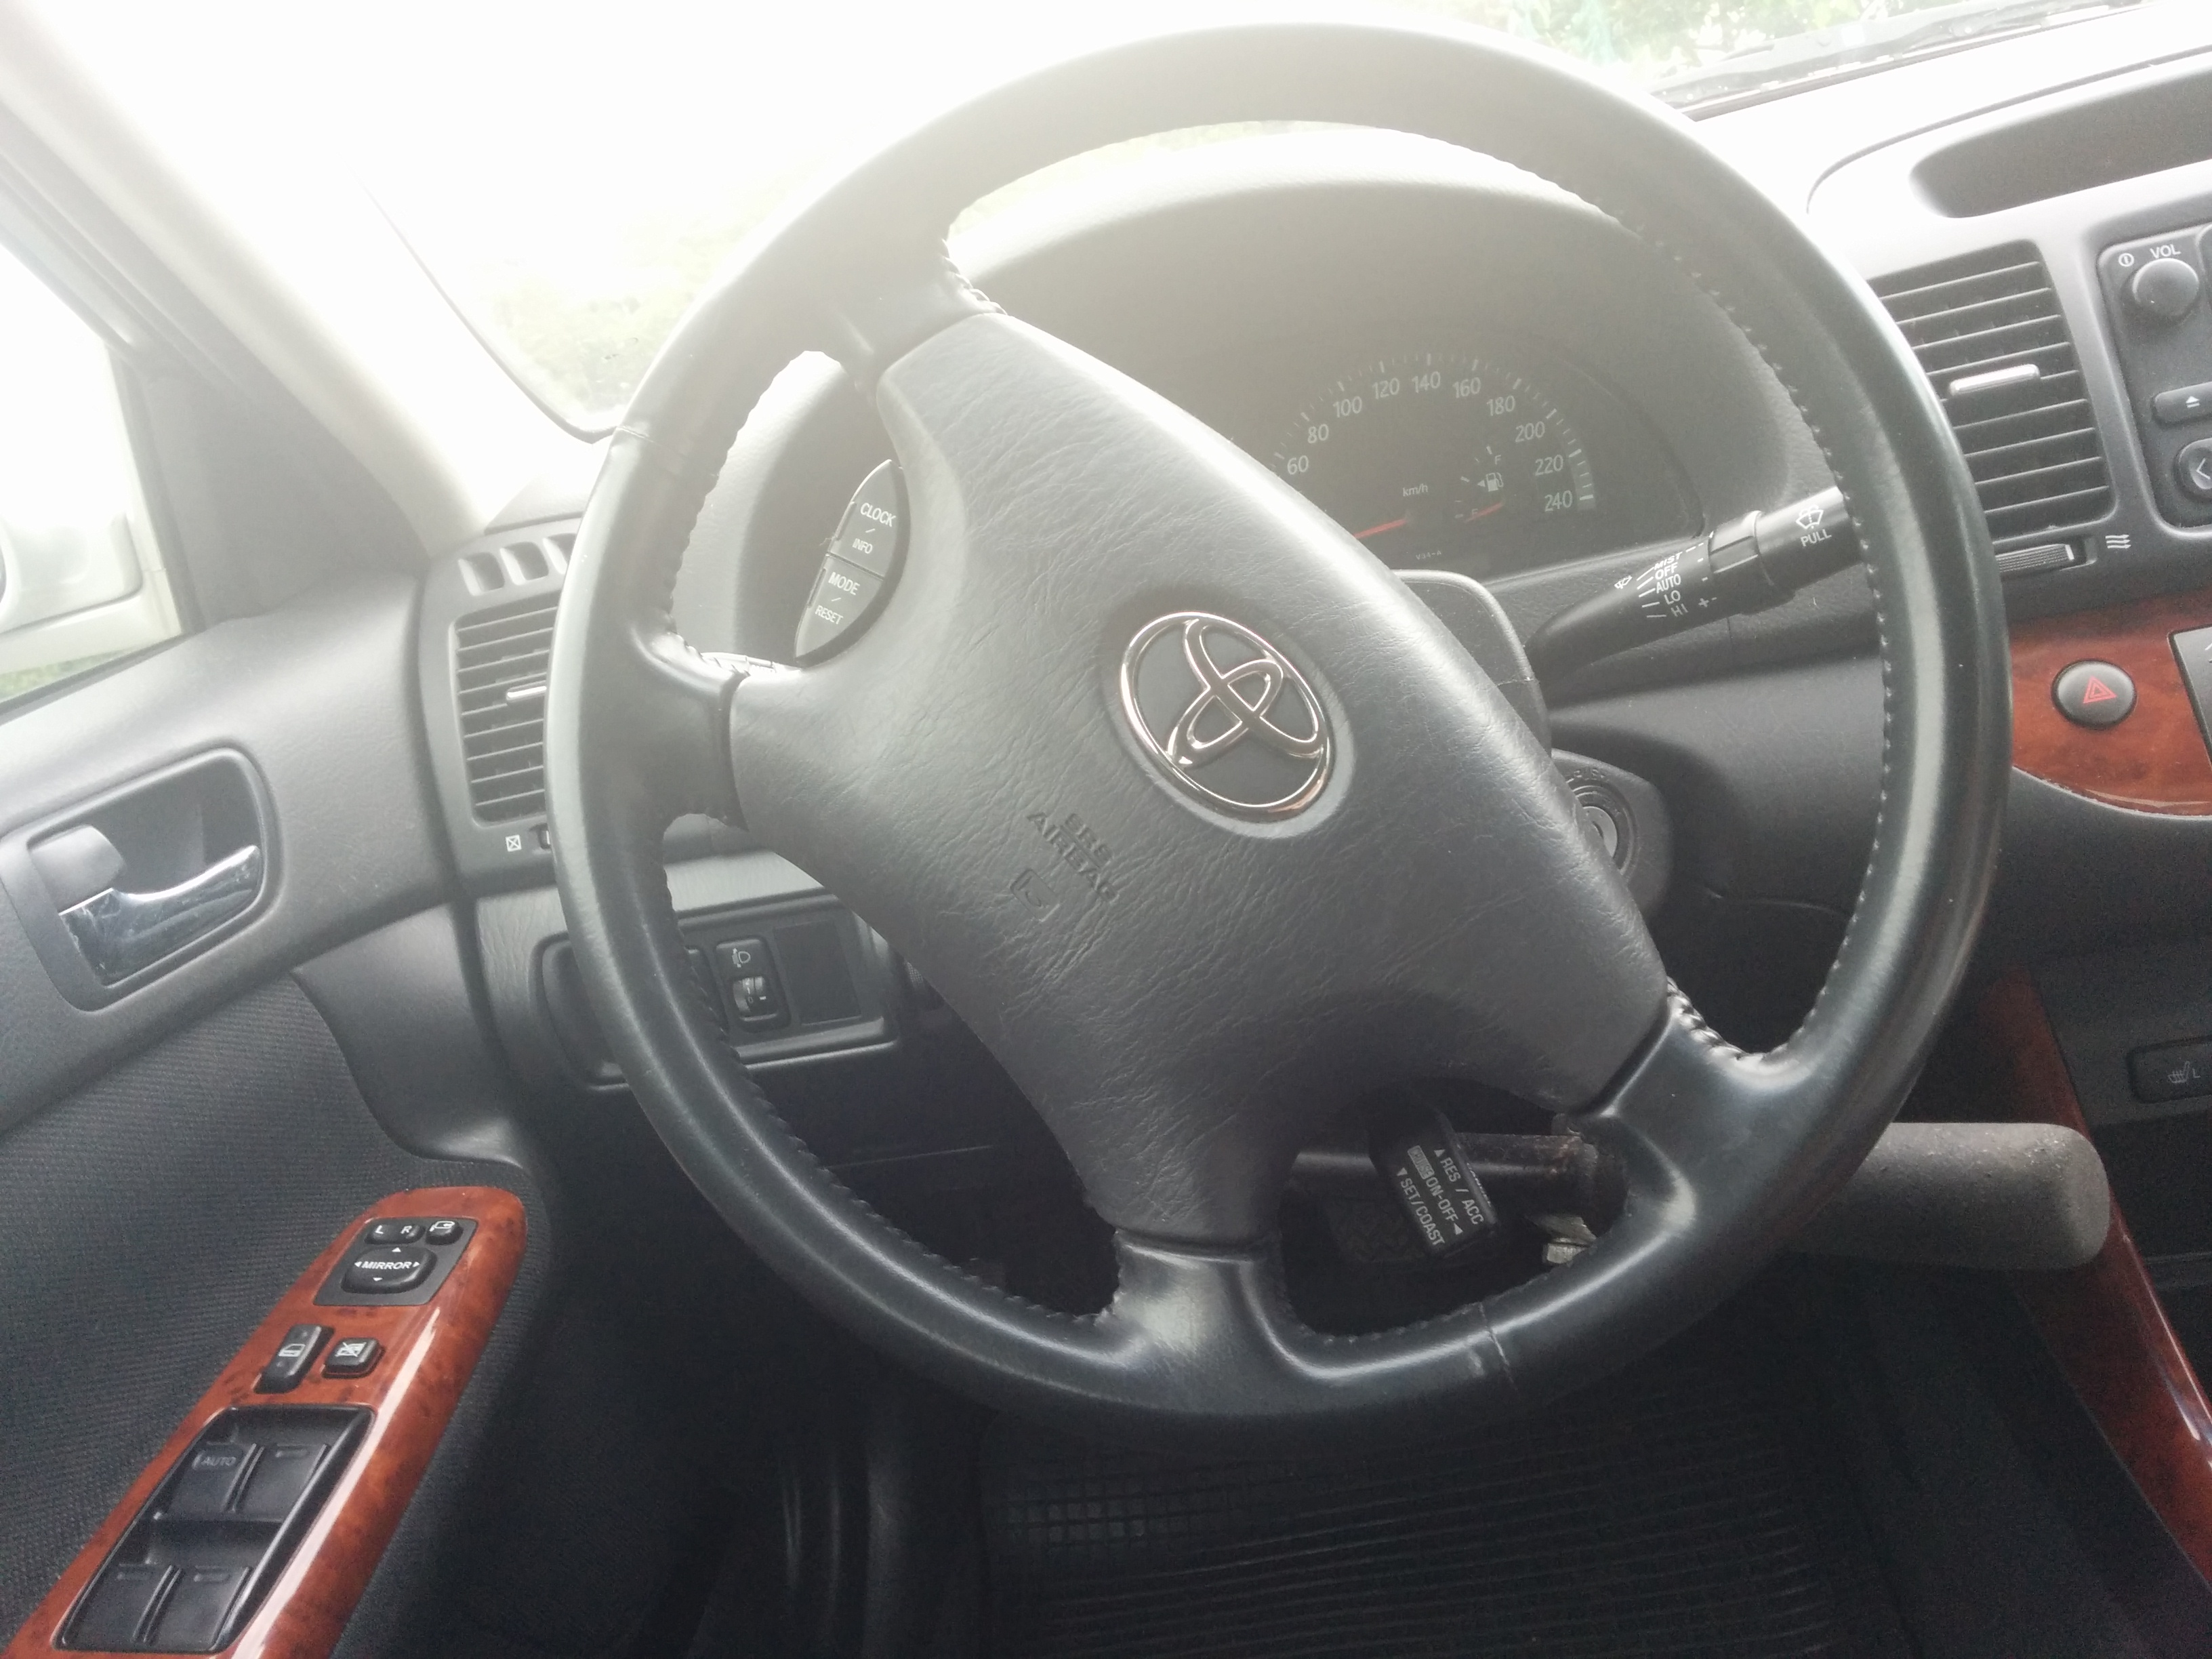 How to remove steering column cover - Camry Forums - Toyota